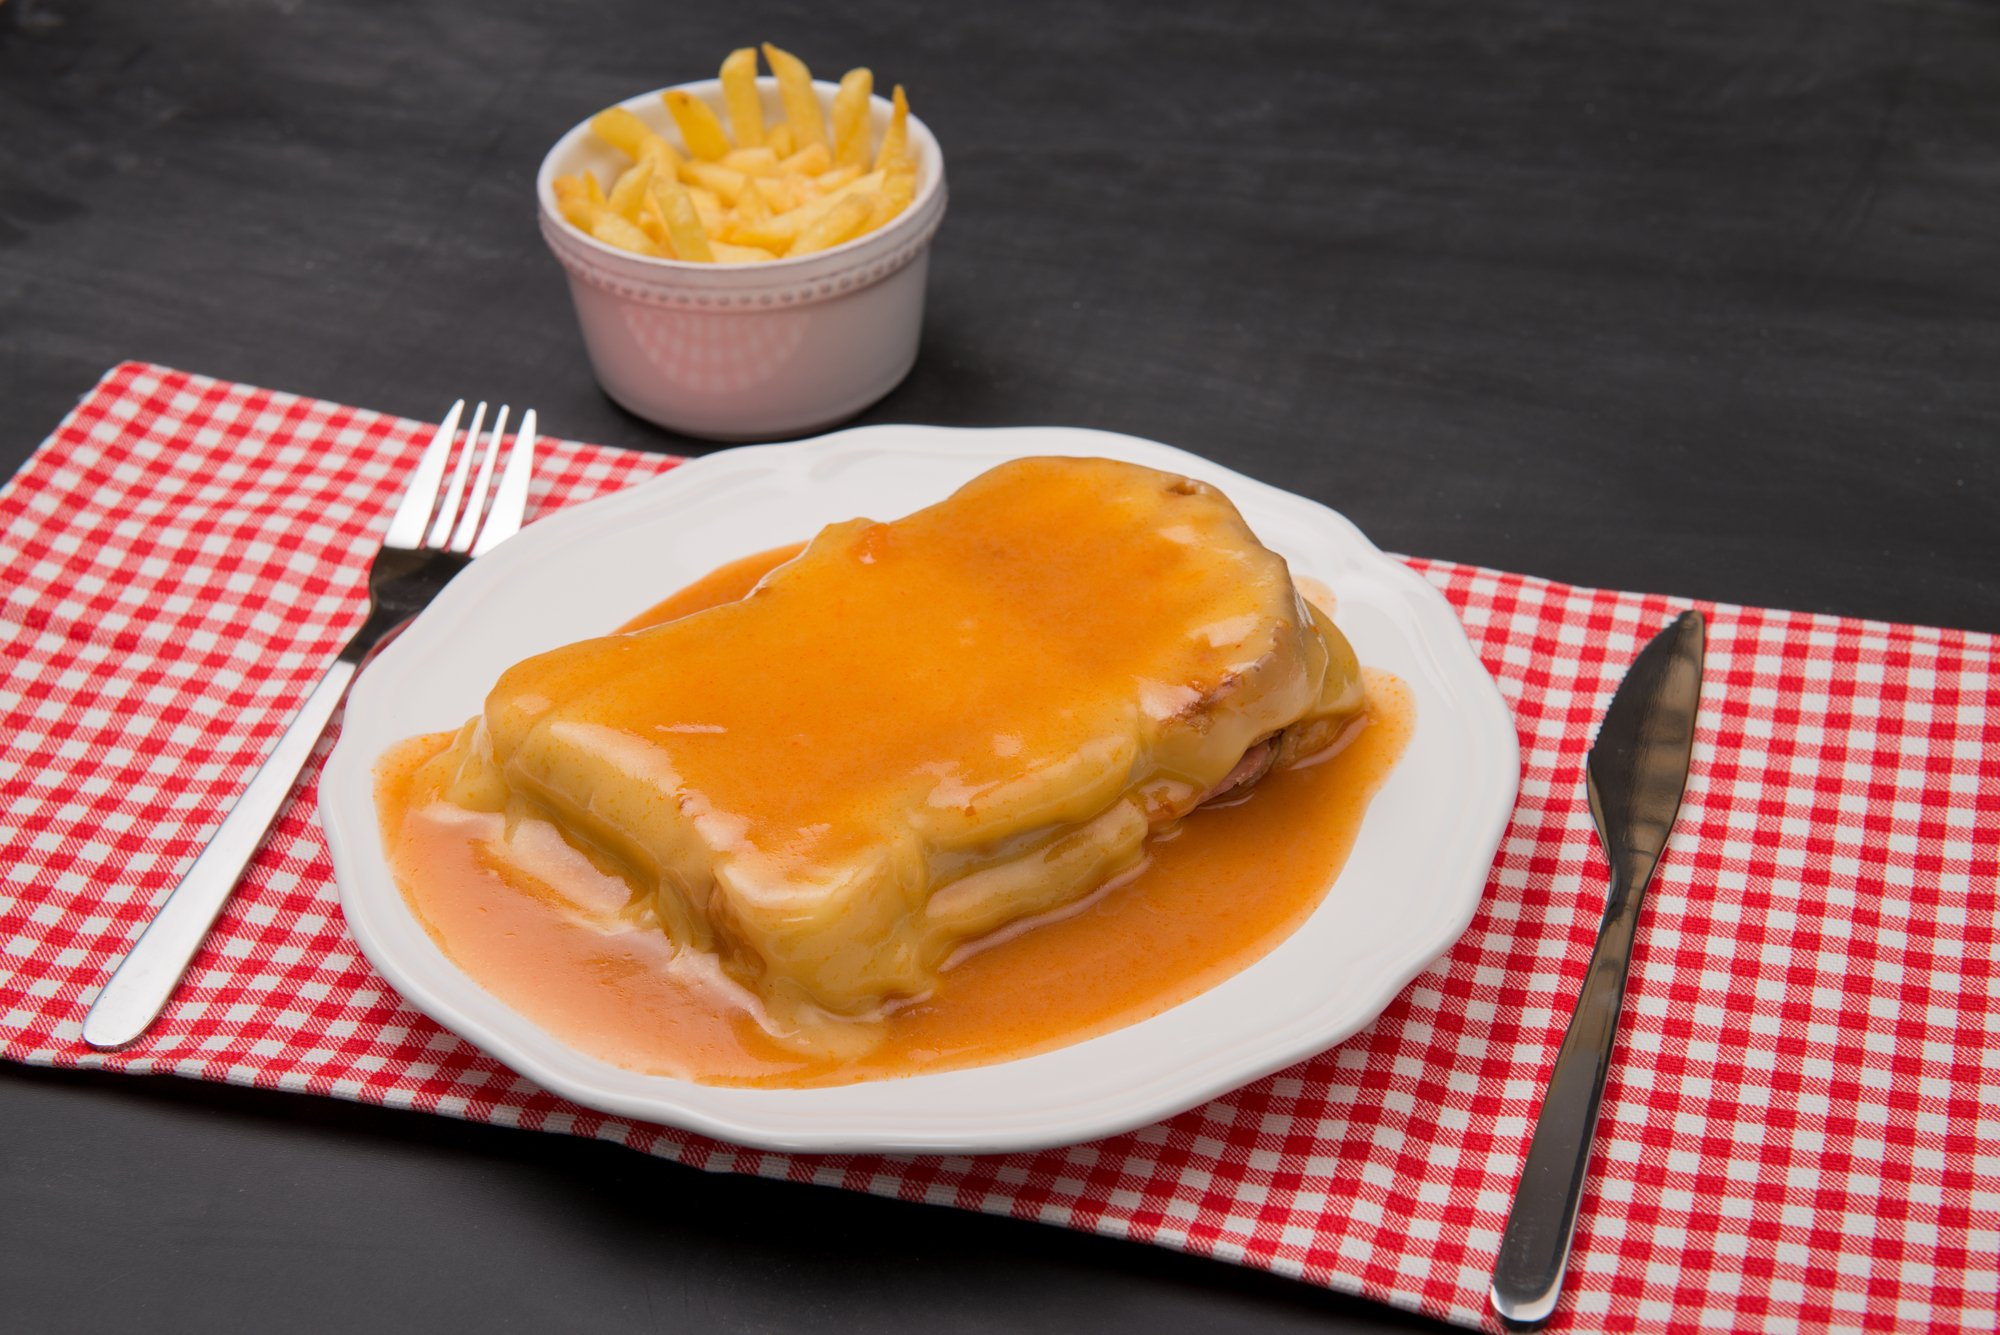 Francesinha and french fries, typical food from Porto, Portugal